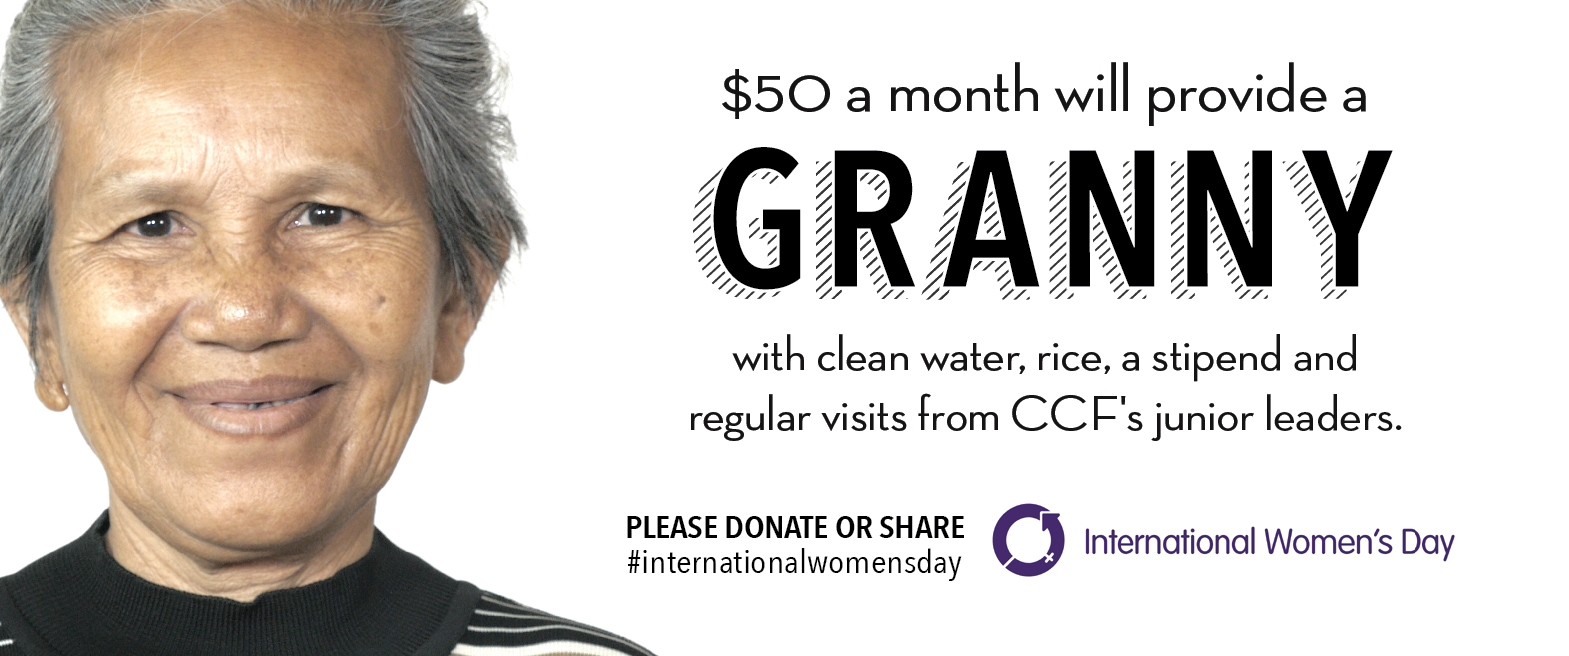 the design that went with the Facebook post of the Granny Sponsorship video